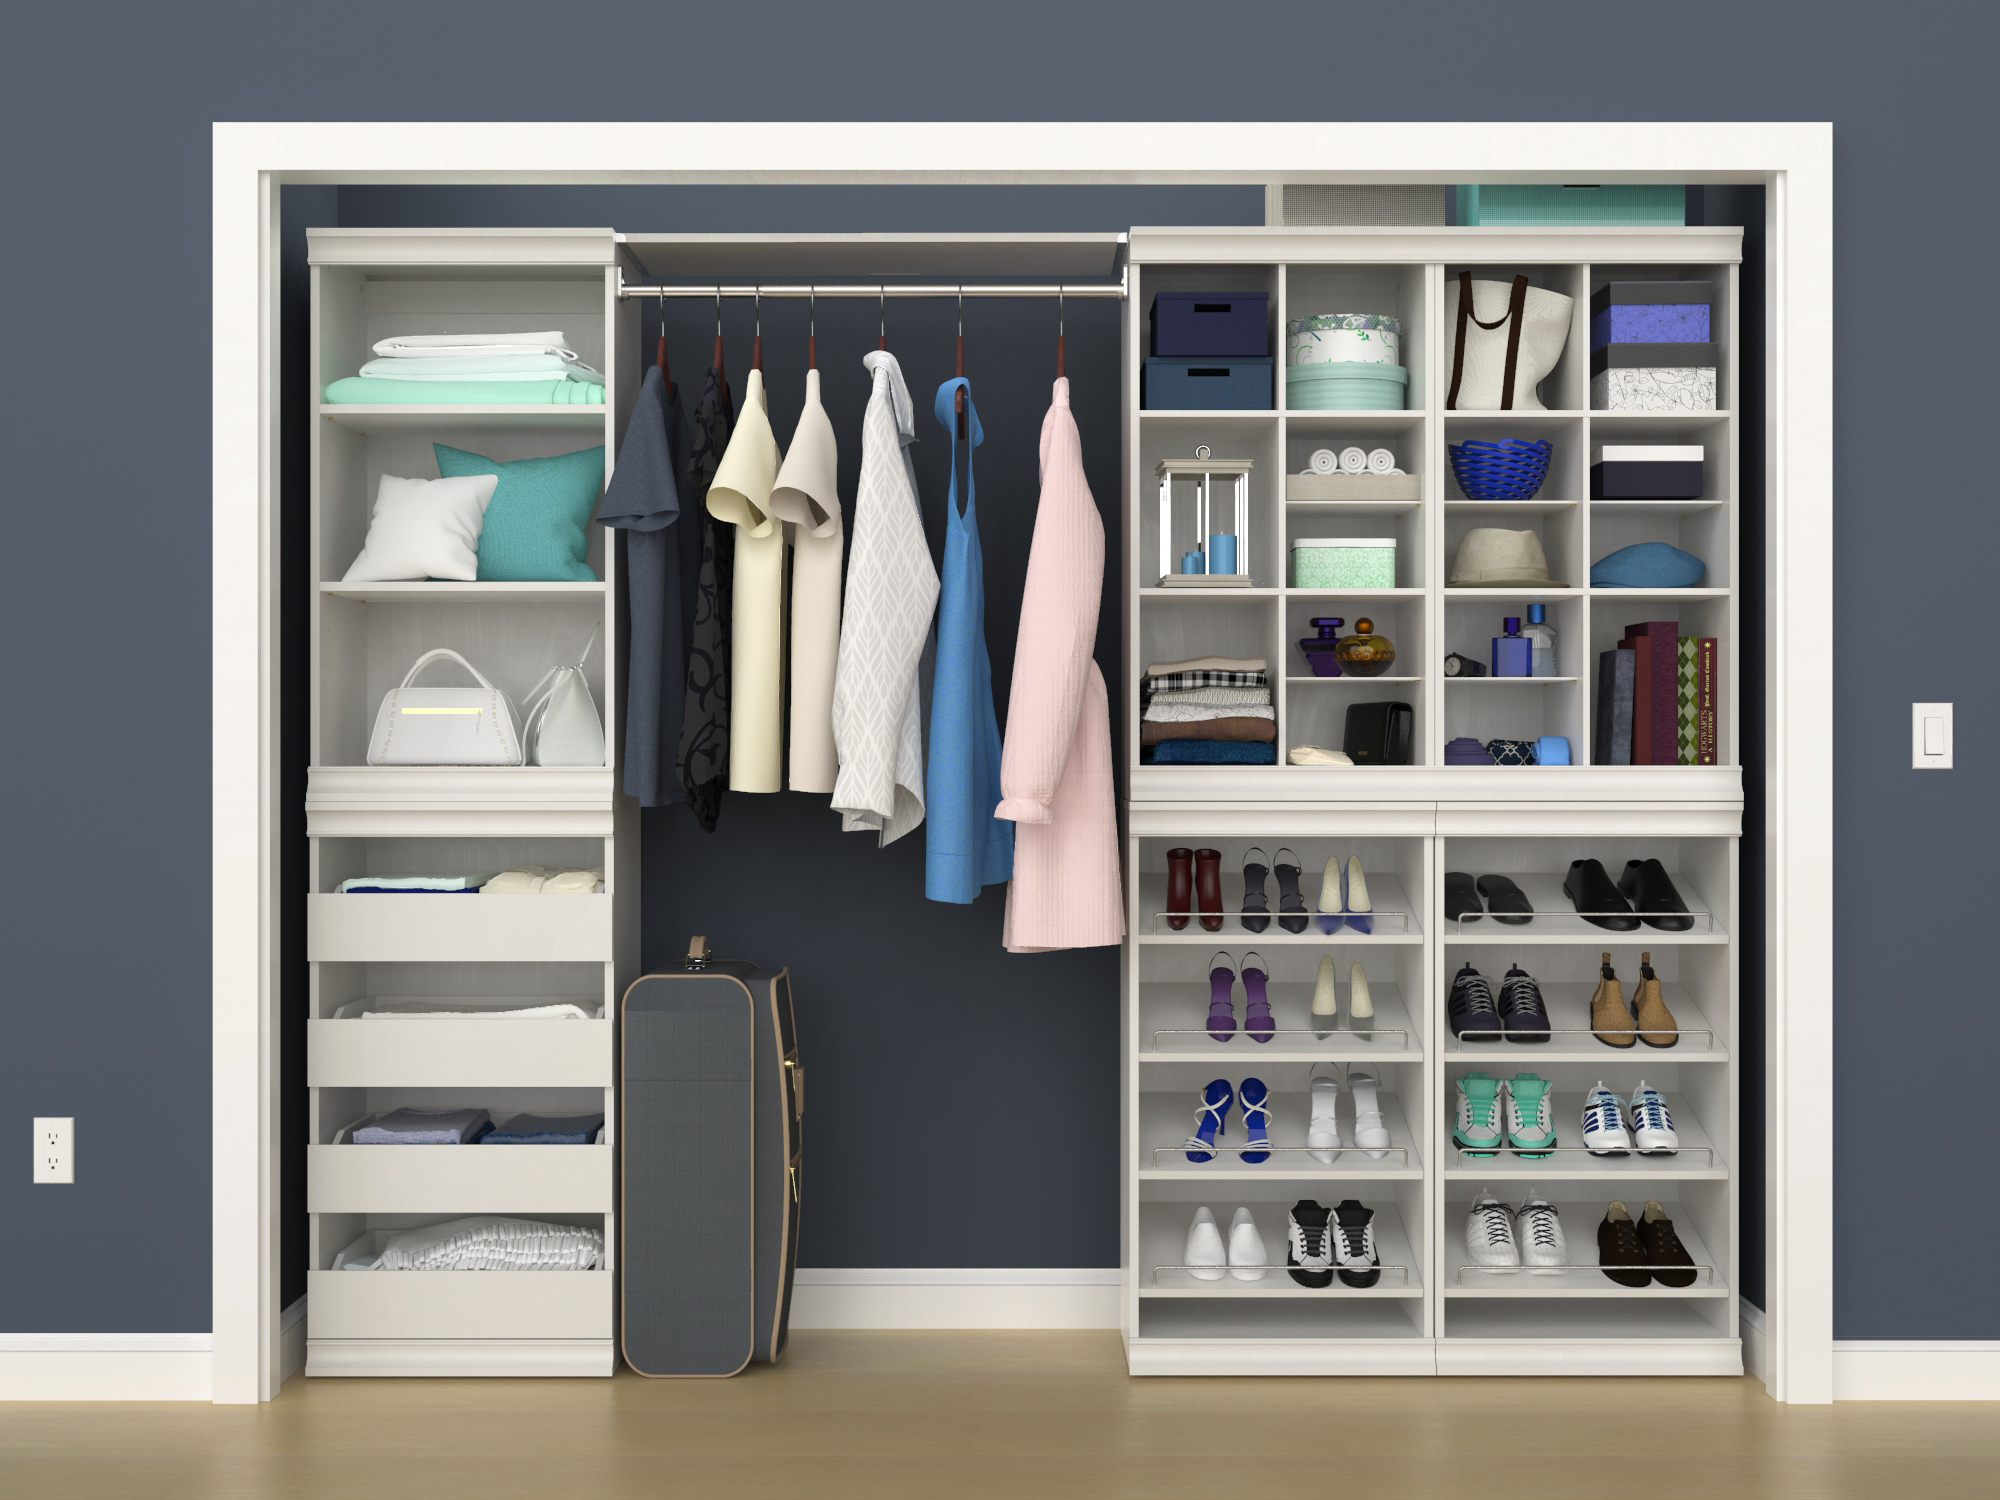 Introducing ClosetMaid's New Modular Closet System